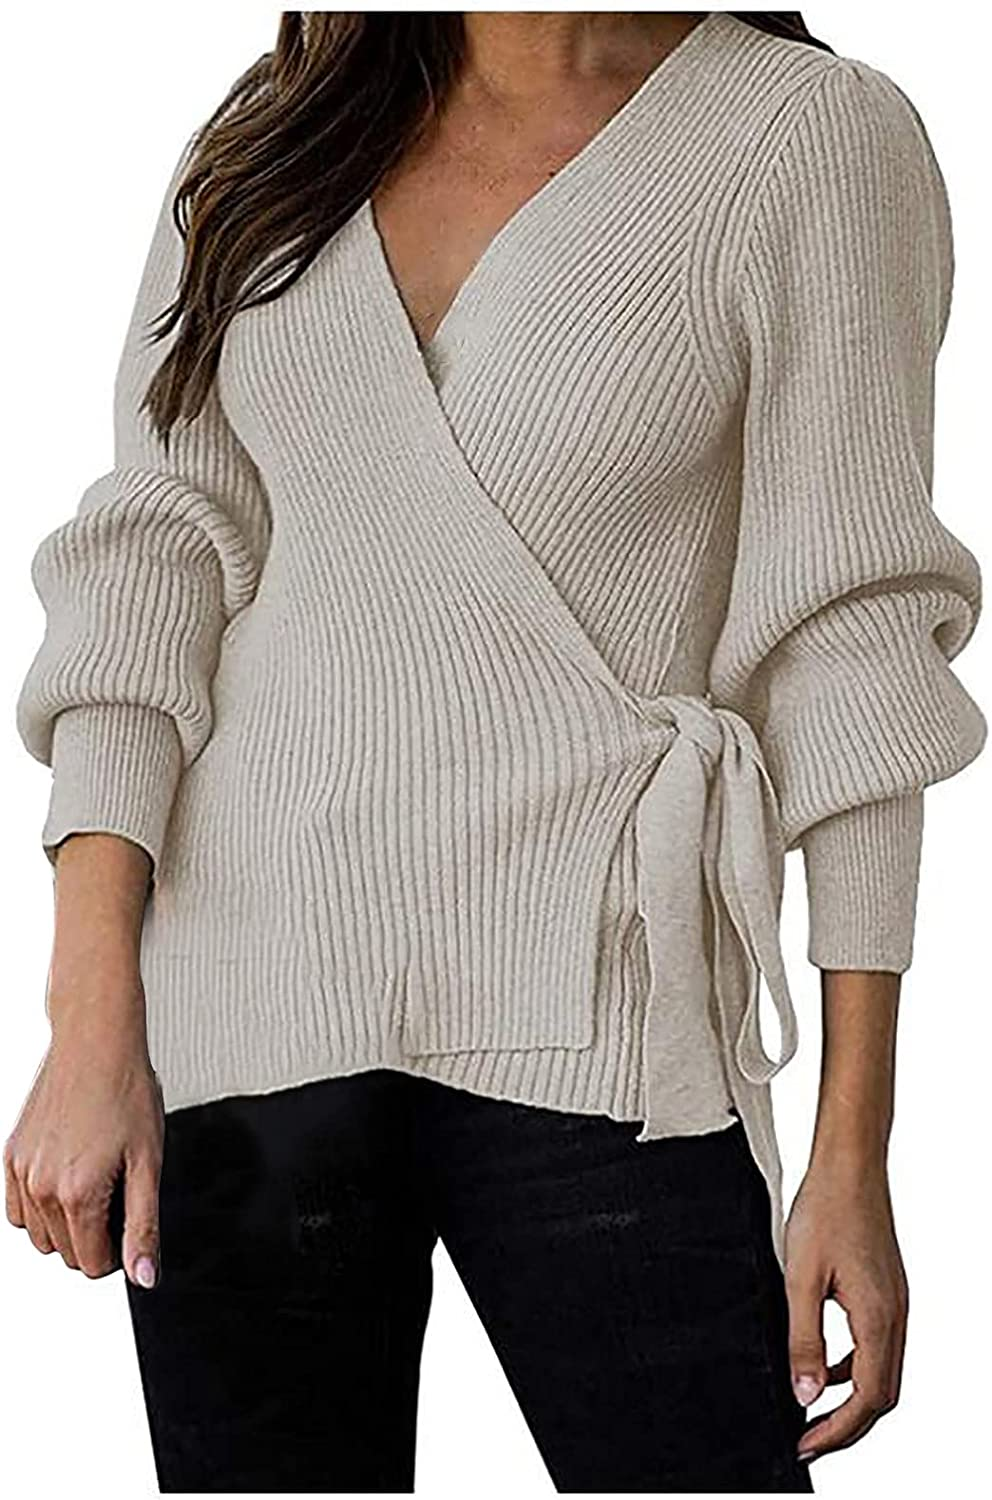 Kanzd Womens Tops Sweaters for Women Fashion V Neck Knitted Wrap Tops Casual Front Tie Sweater Loose Knit Cardigan Tops